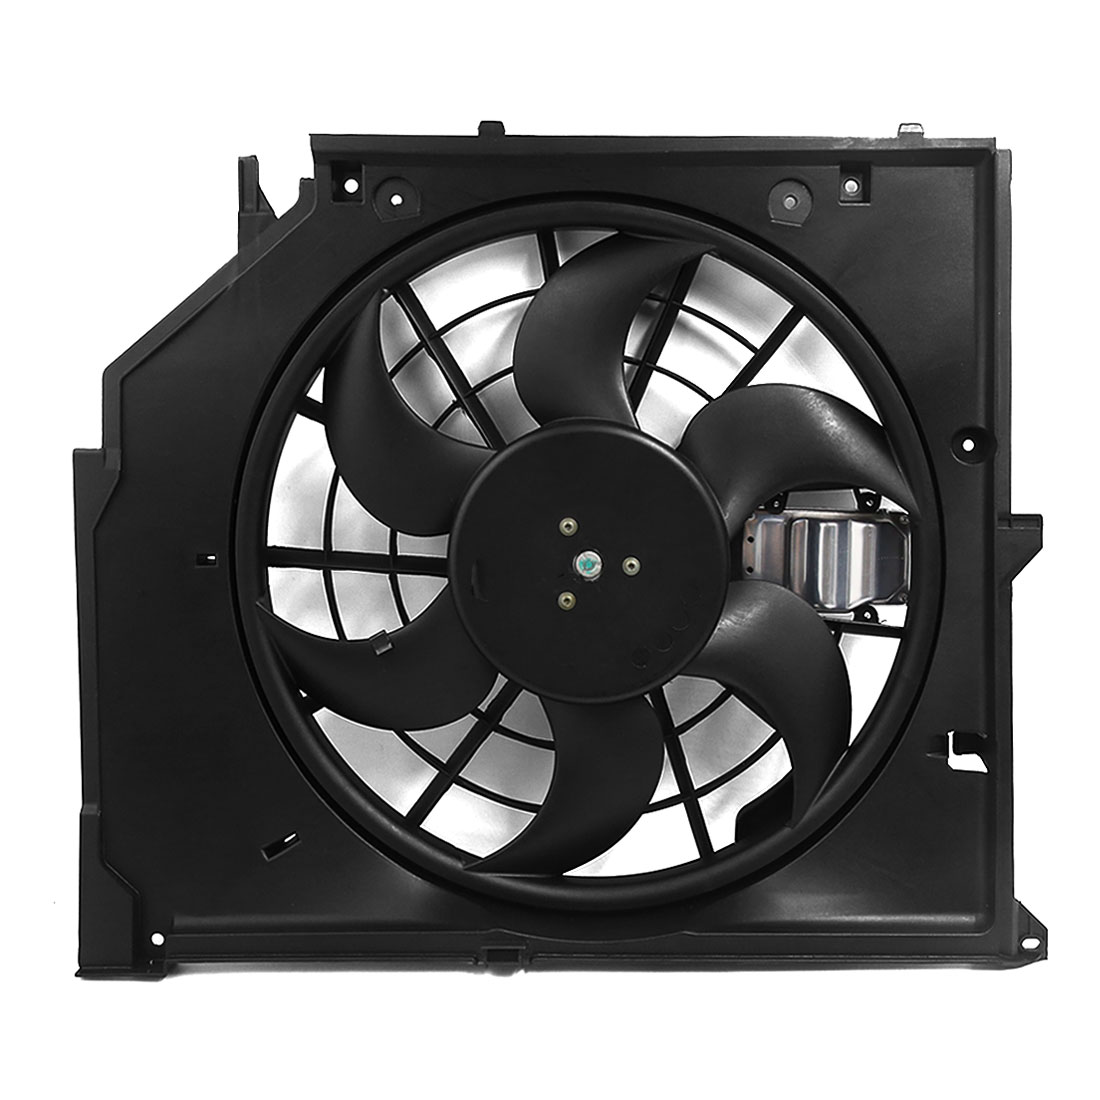 Radiator/Condenser Cooling Fan Motor Assembly for 99-05 BMW 3 Series E46 Puller